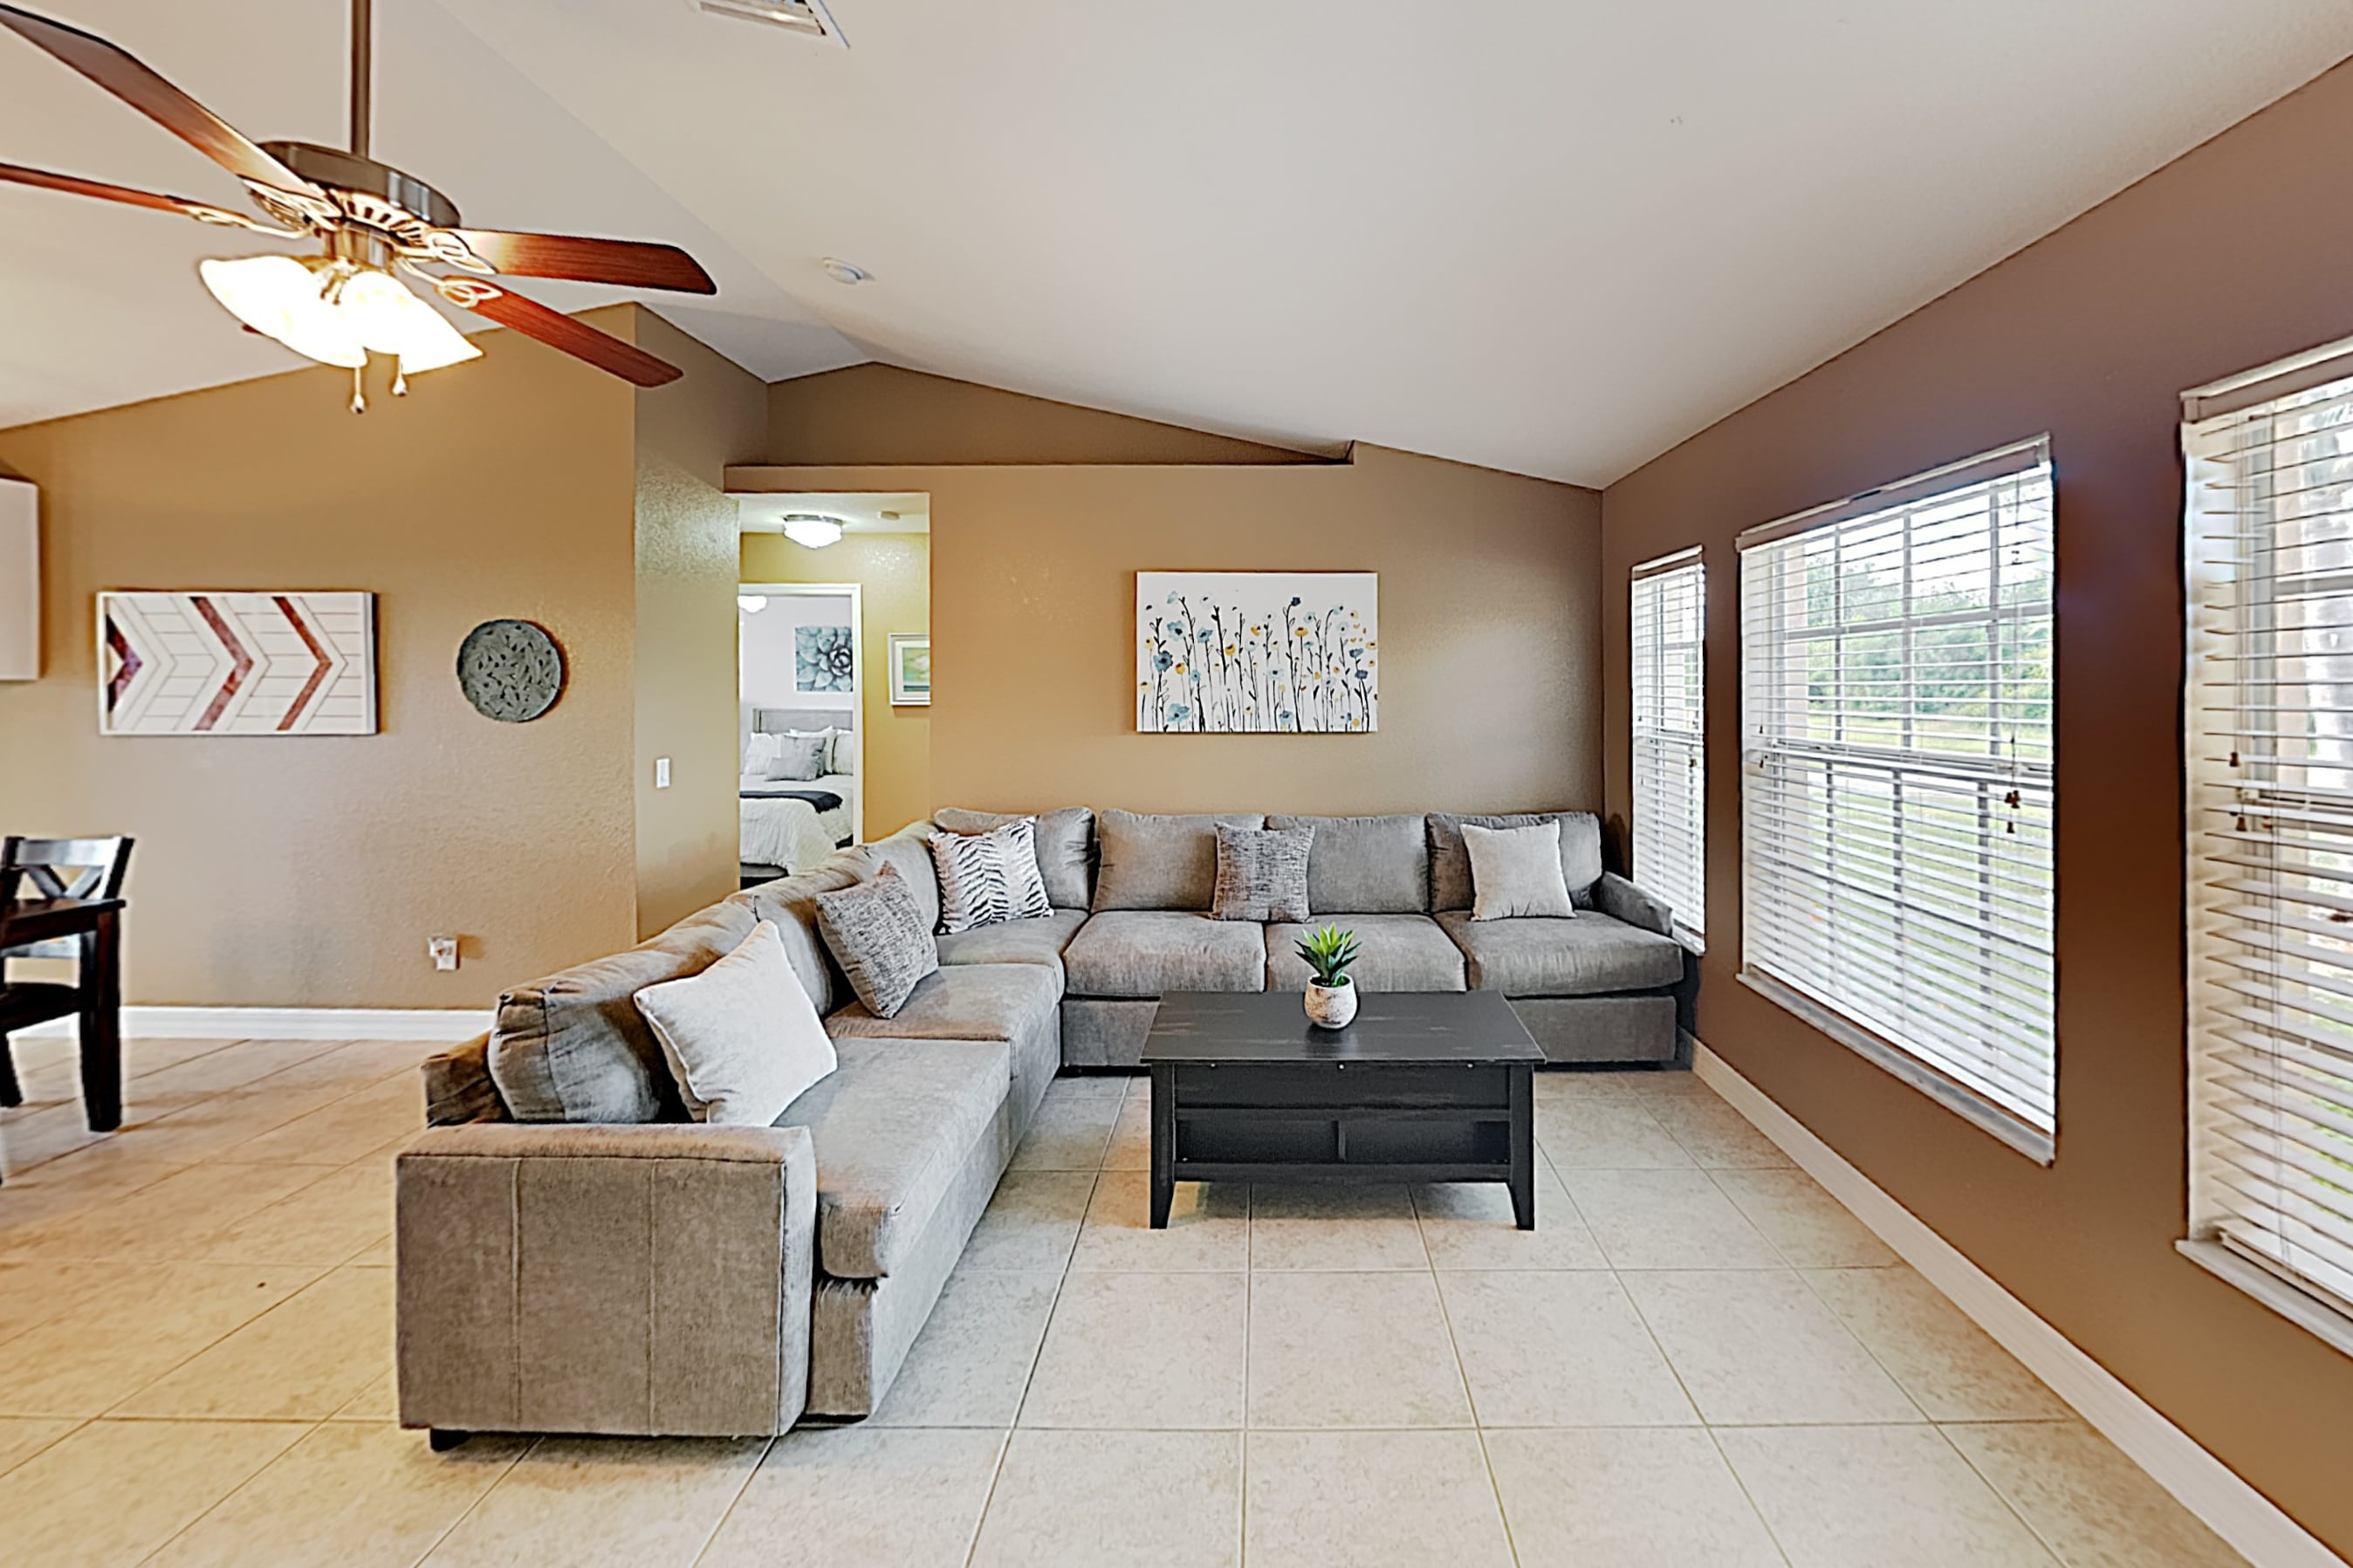 Relax on a comfy sectional in the light-filled living area.